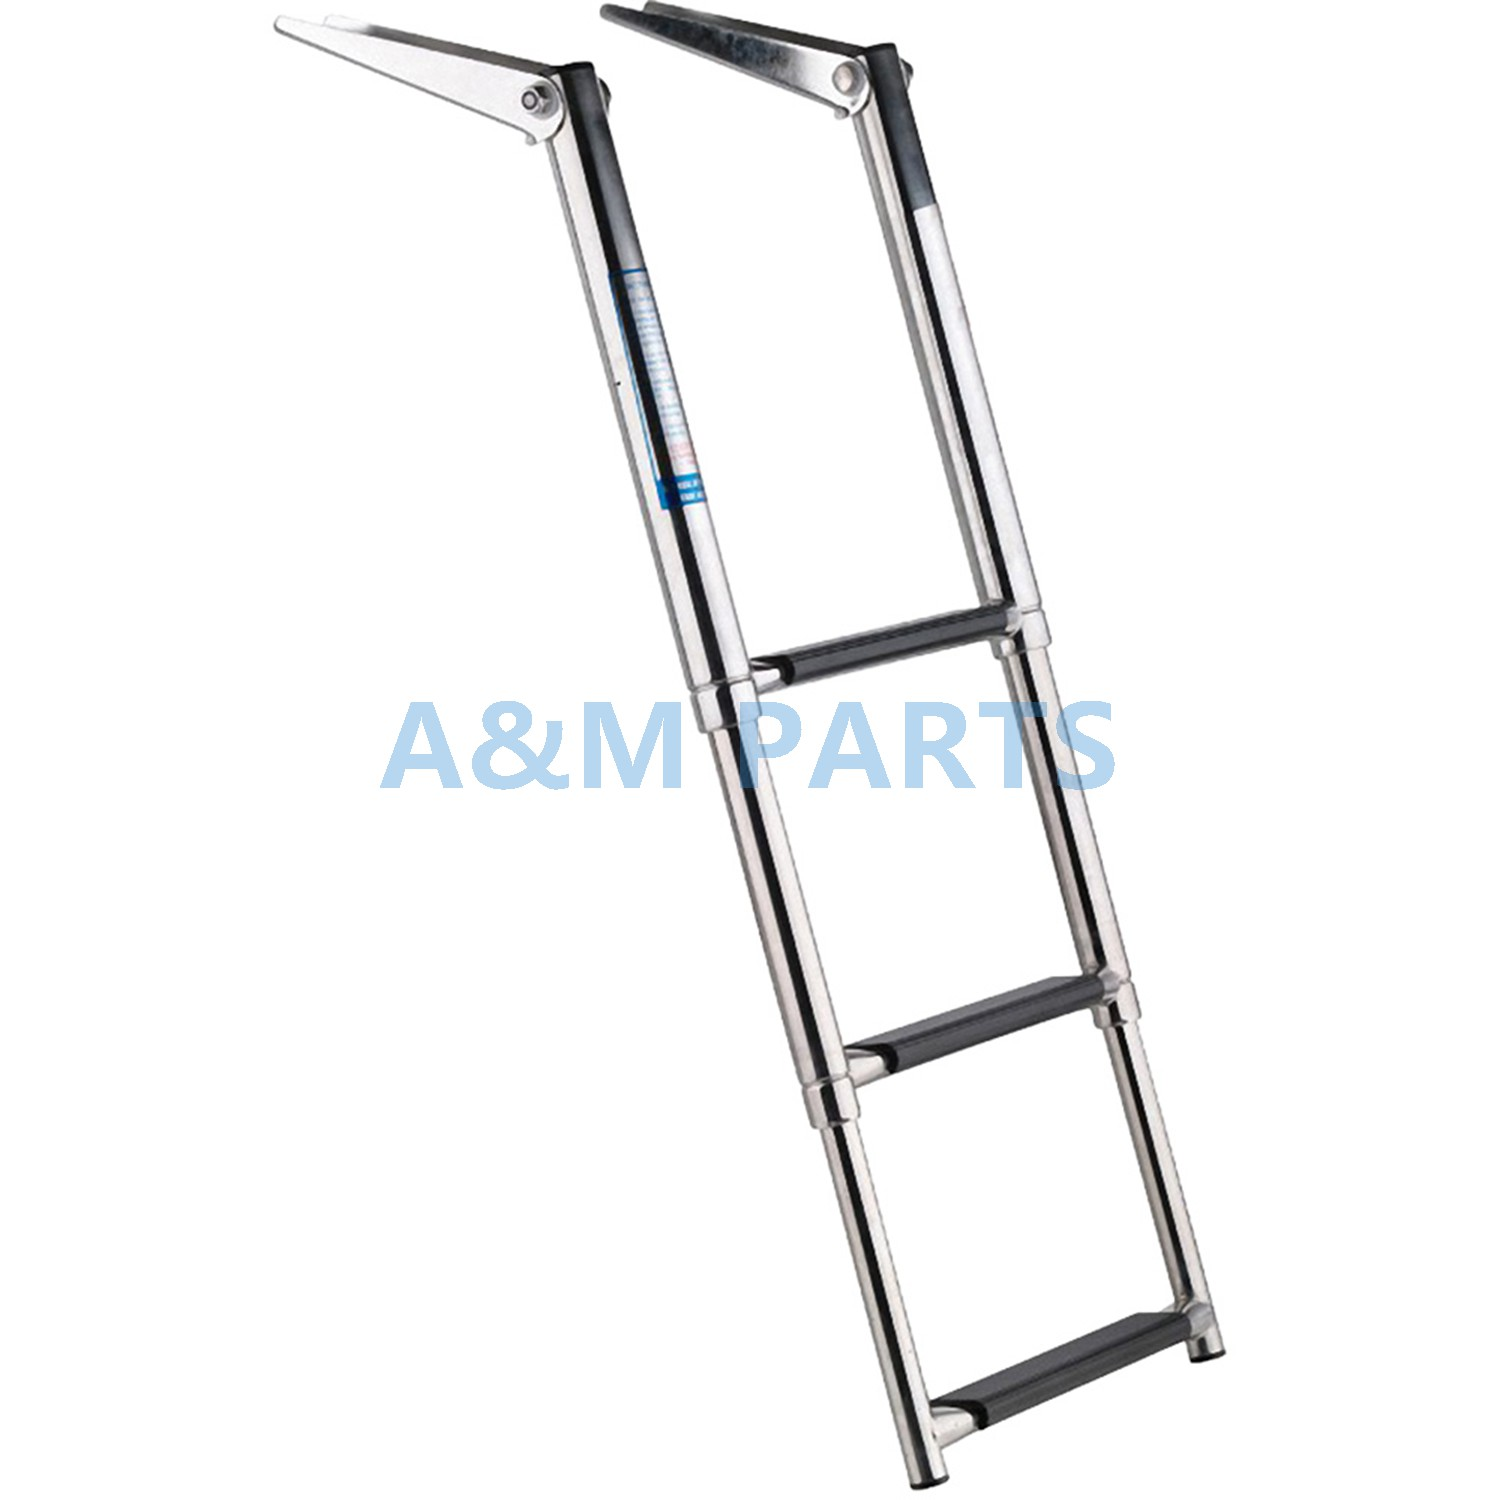 Stainless Steel 3 Step Telescopic Boat Ladder - Marine Transom Boarding LadderStainless Steel 3 Step Telescopic Boat Ladder - Marine Transom Boarding Ladder